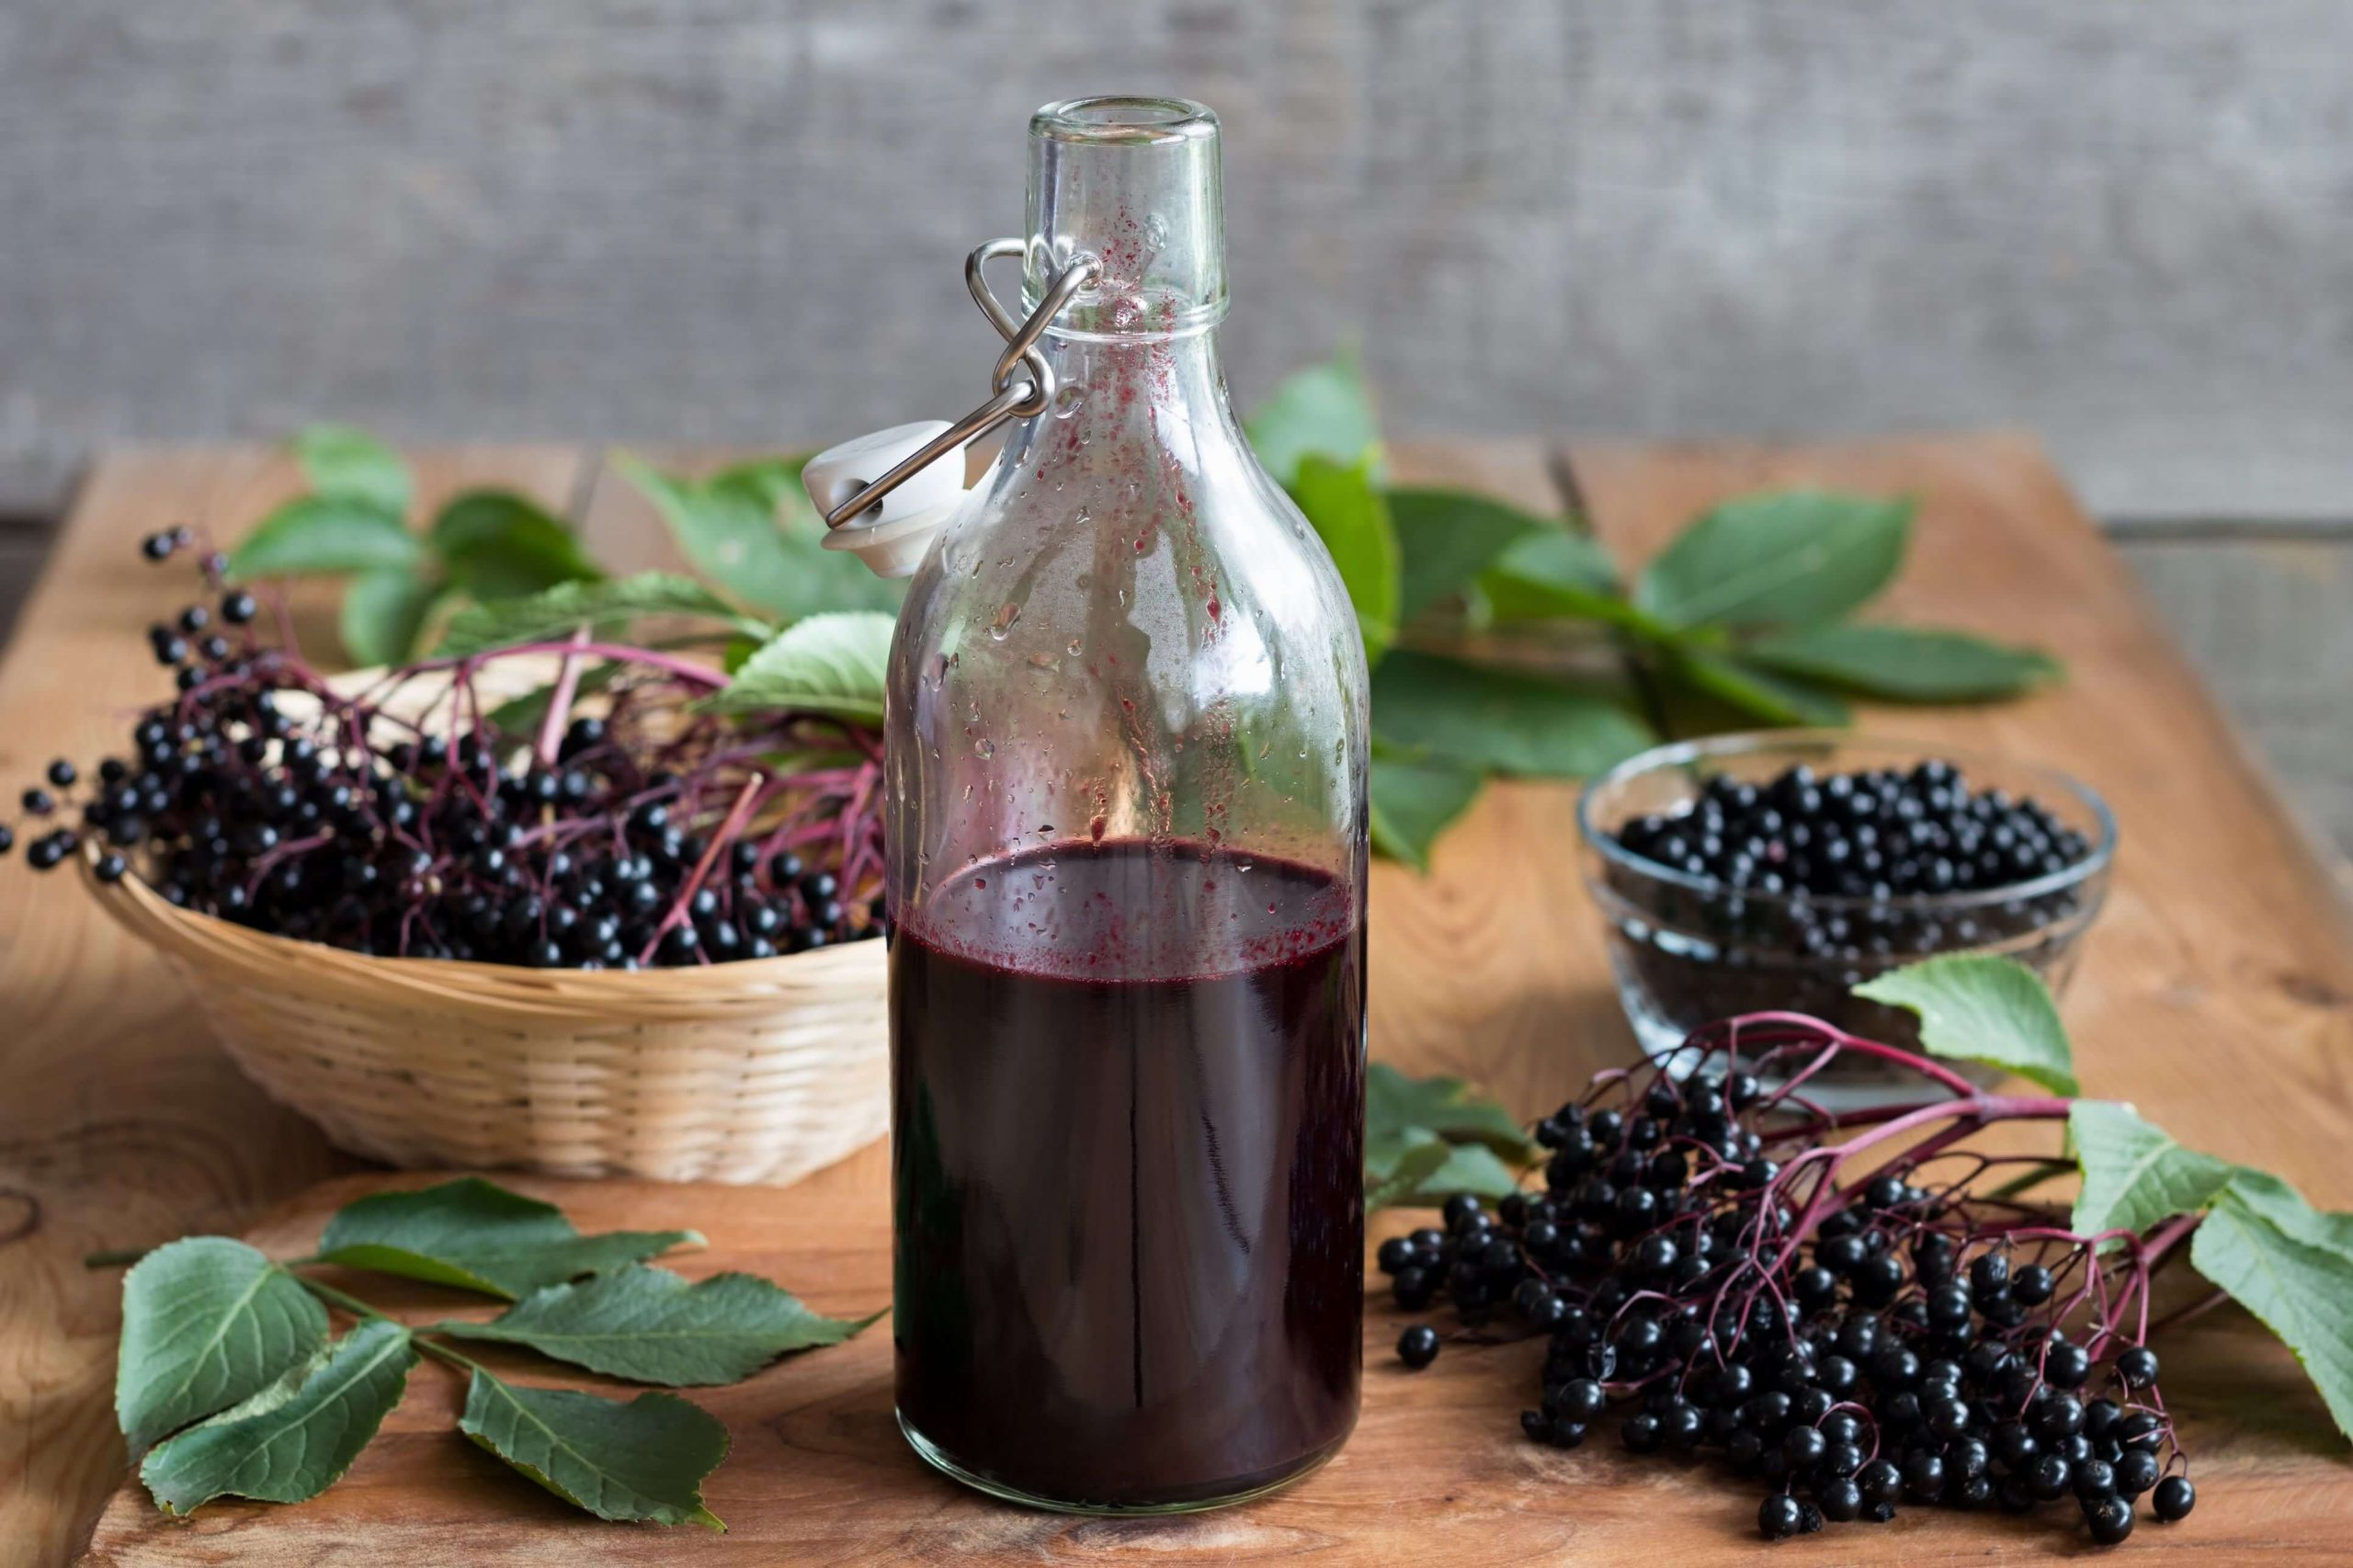 Elderberries: The New Face of California Hedgerows